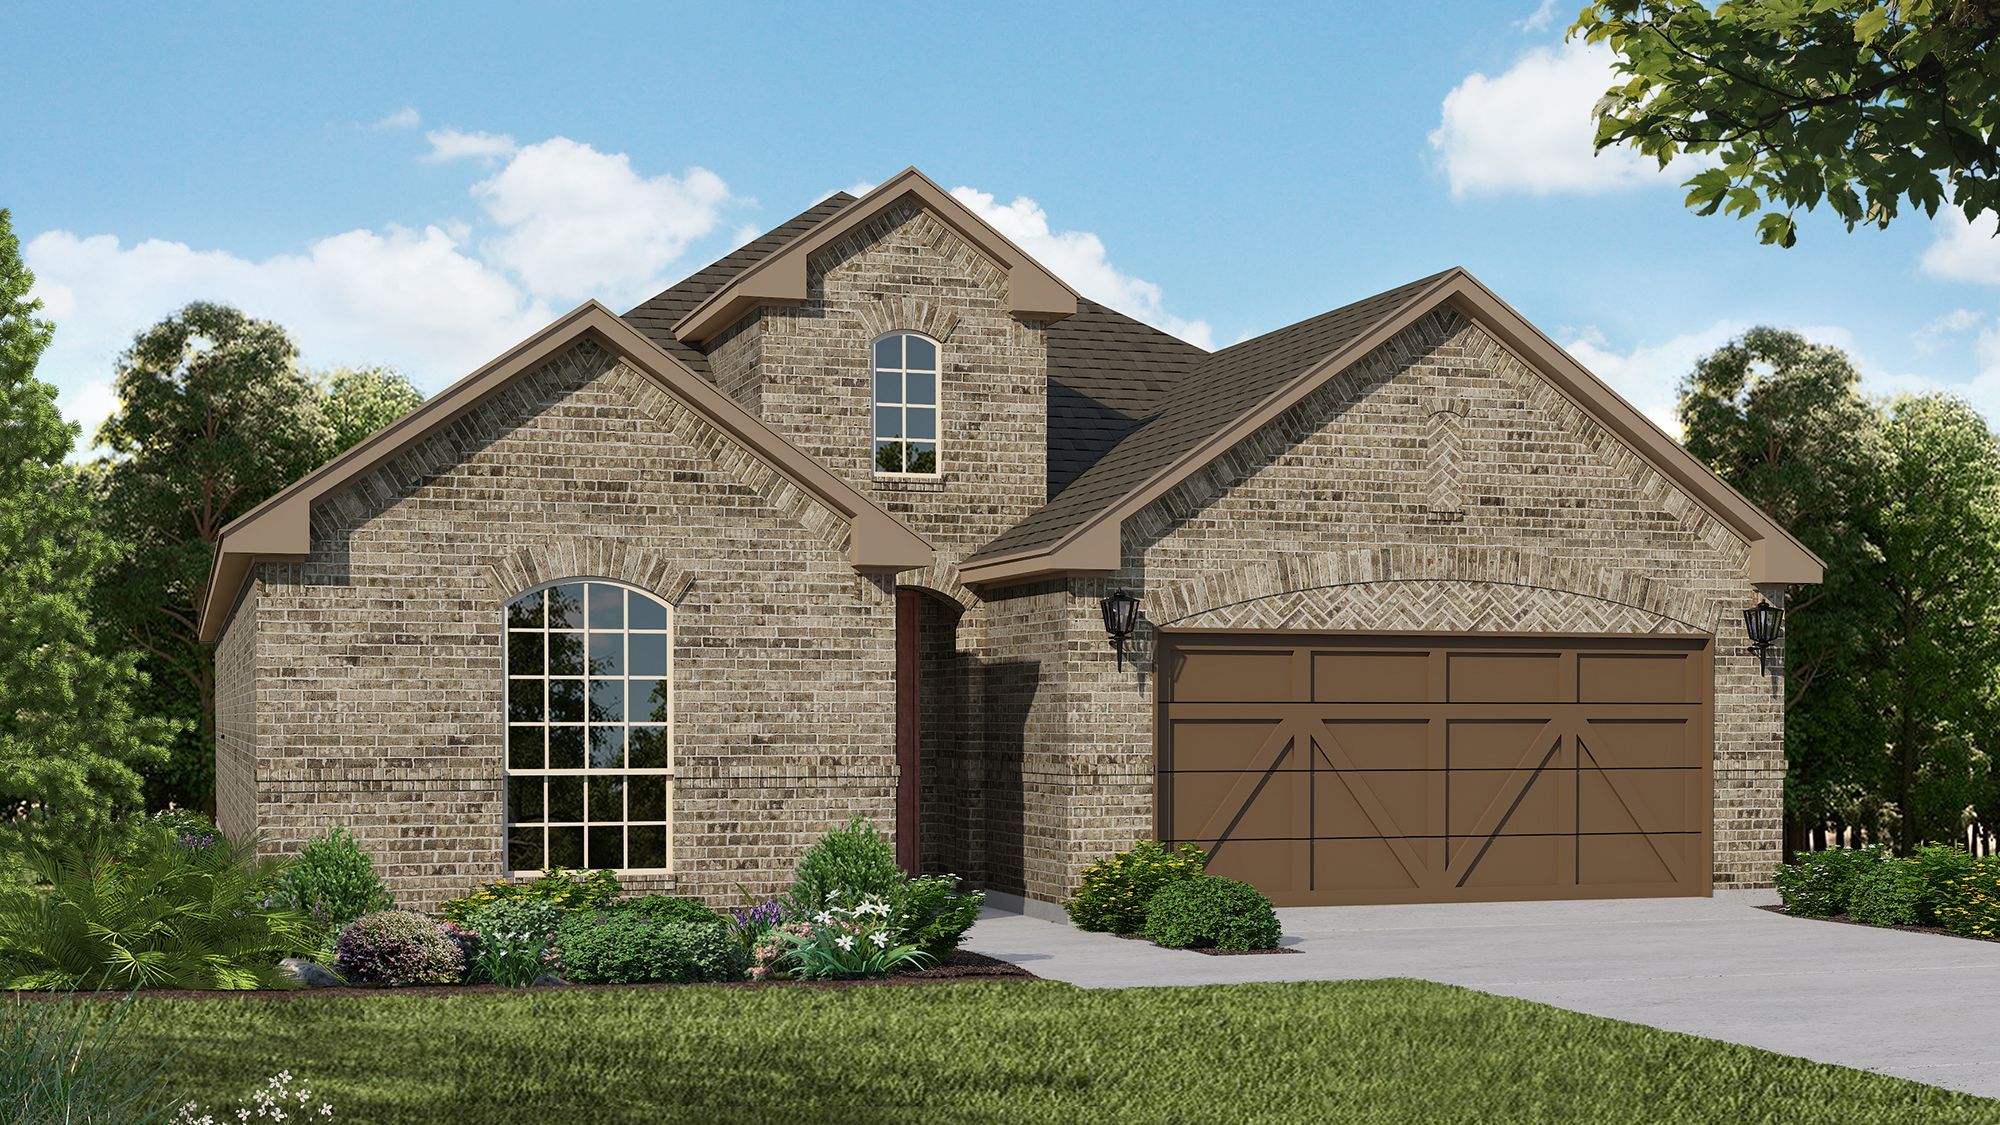 Plan 1530 Elevation A by American Legend Homes